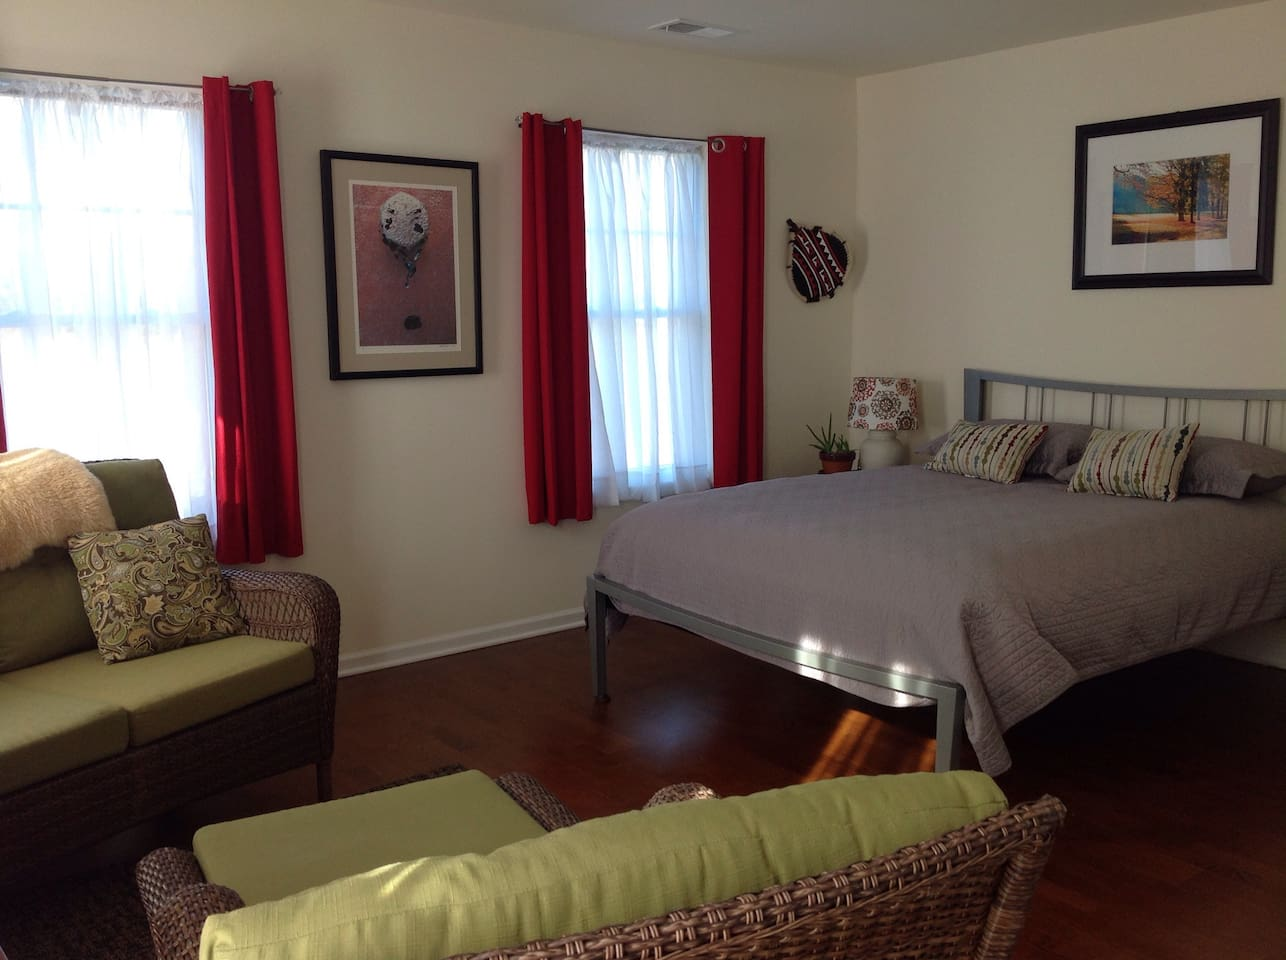 Queen bed, bright room, large closet